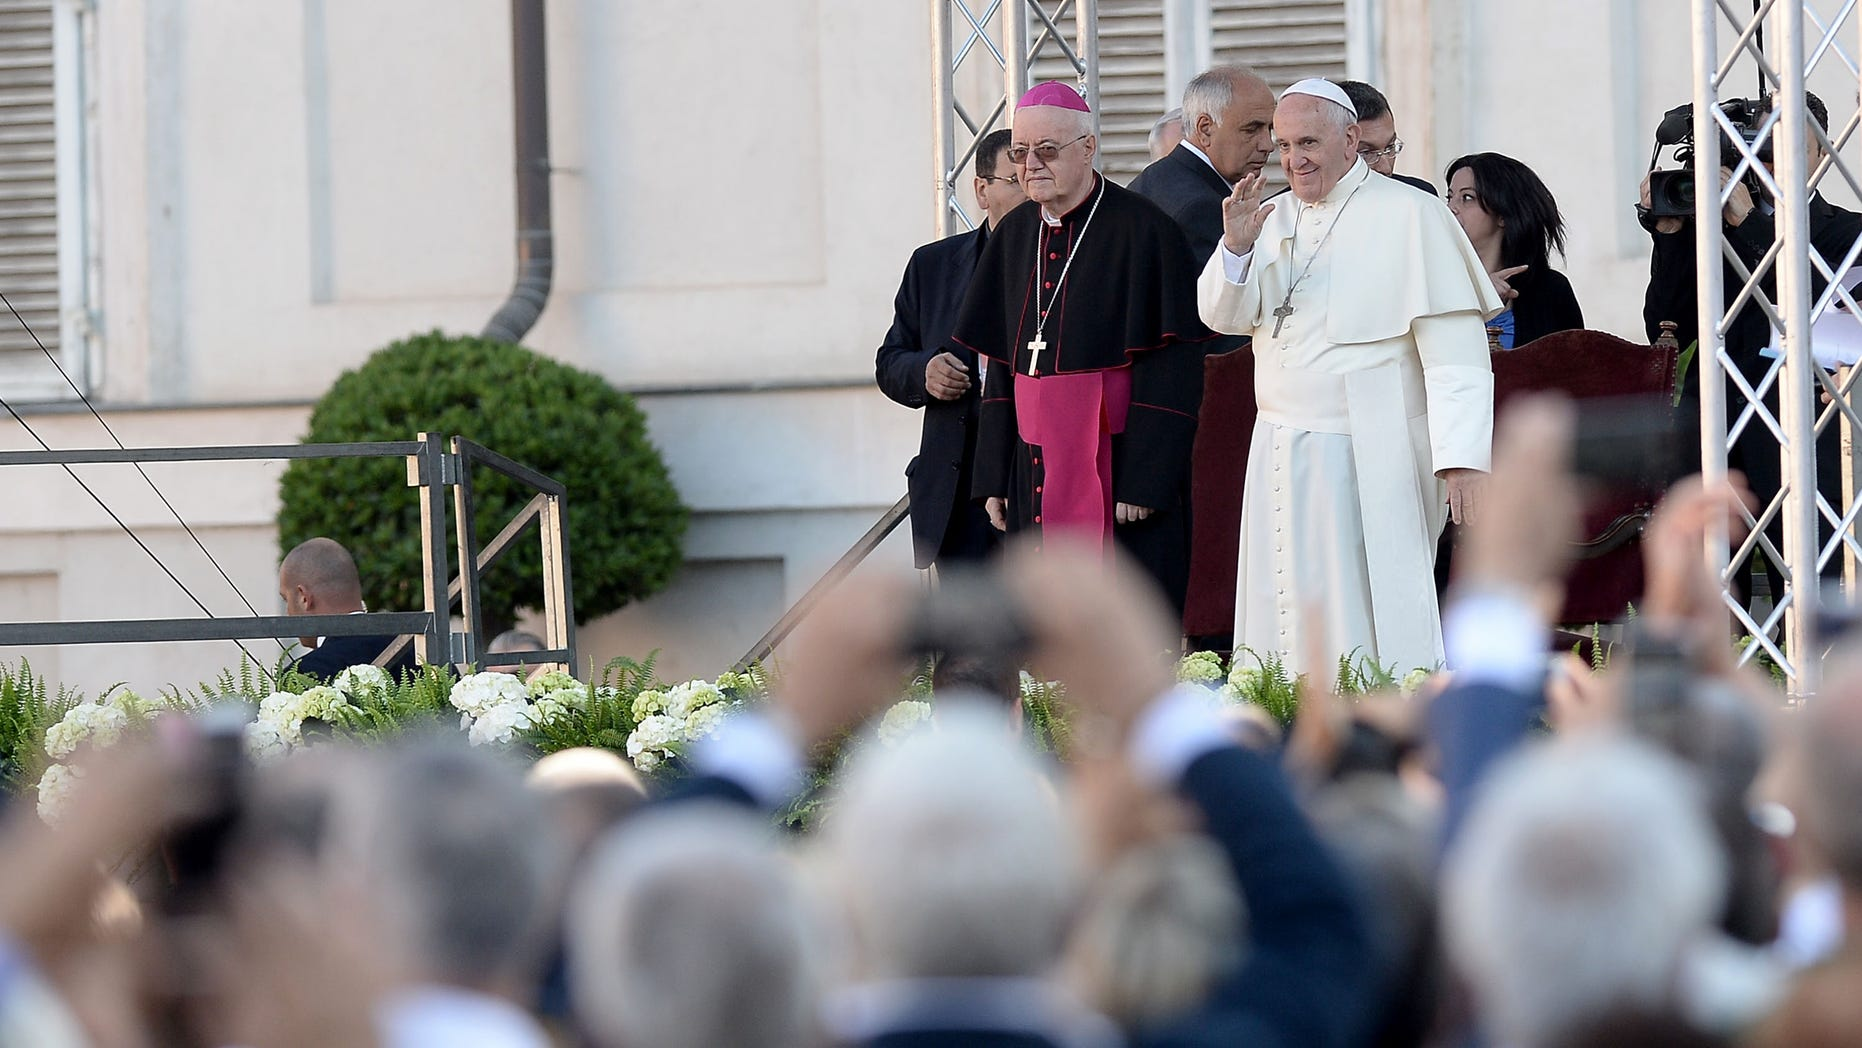 Pope Francis Pope Francis waves during as he meets with workers and businessmen during his visit to Turin, northern Italy, Sunday, June 21, 2015. Pope Francis earlier prayed in front of the Holy Shroud, the 14 foot-long linen revered by some as the burial cloth of Jesus, on display at the Cathedral of Turin. (AP Photo/Massimo Pinca)